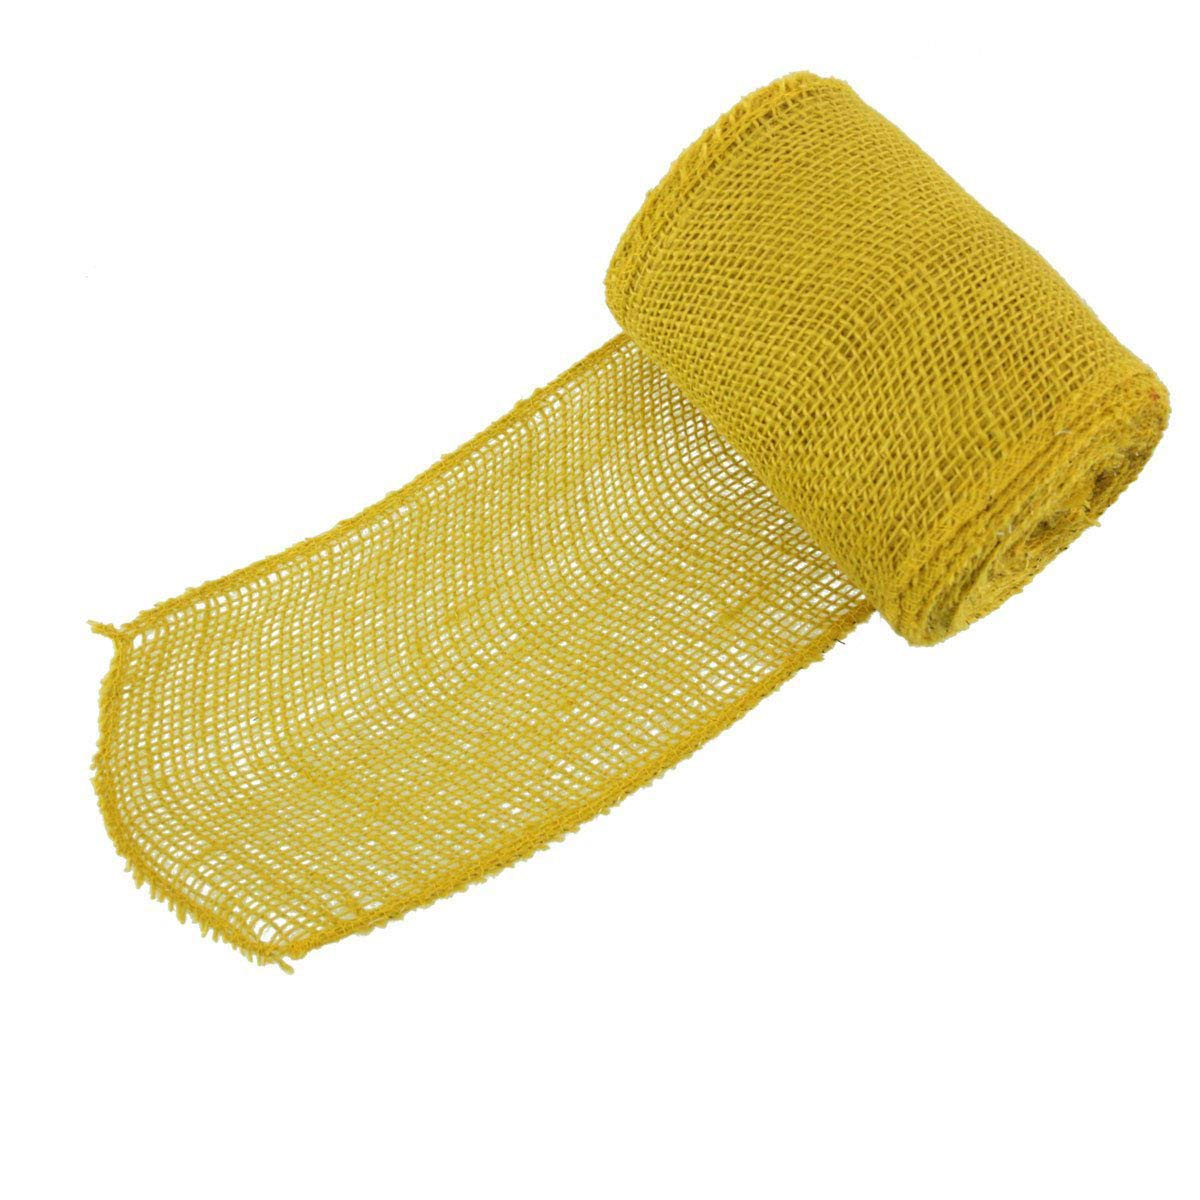 BambooMN 5.5'' Inch wide Color Burlap Fabric Hemp Jute Craft Ribbon Roll, 10 Rolls of 10 Yards, Straw Yellow by BambooMN